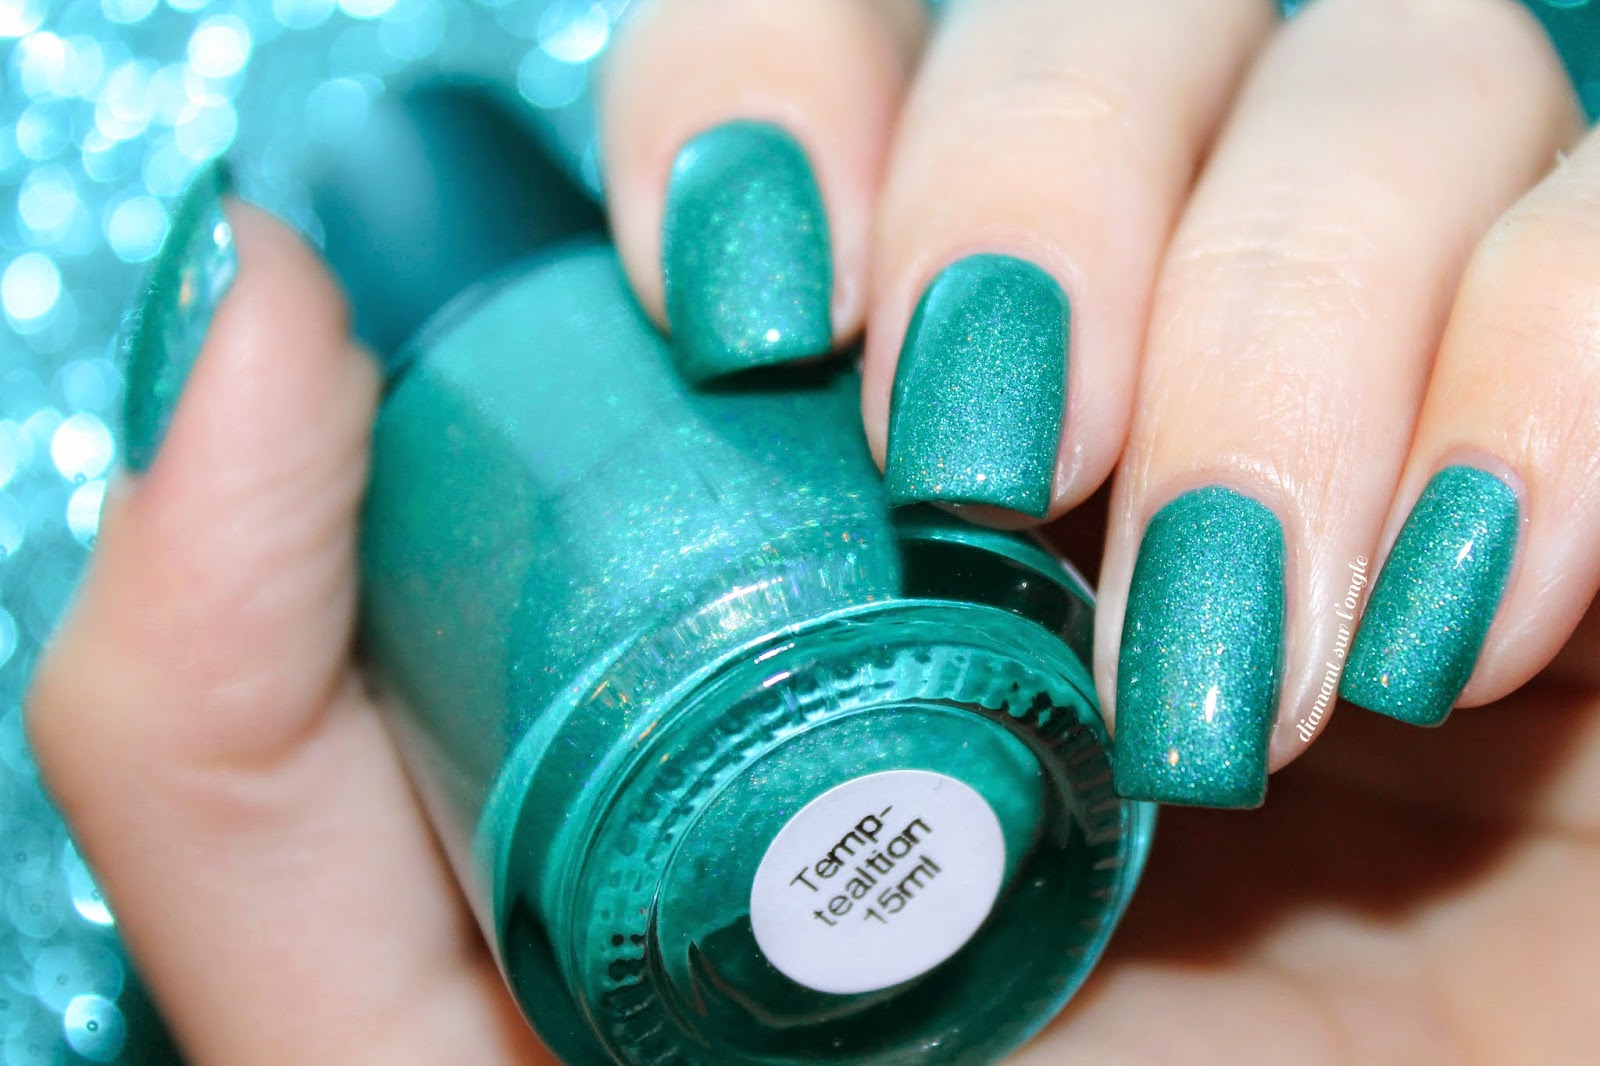 Swatch of Temp-tealtion from Lilypad Lacquer